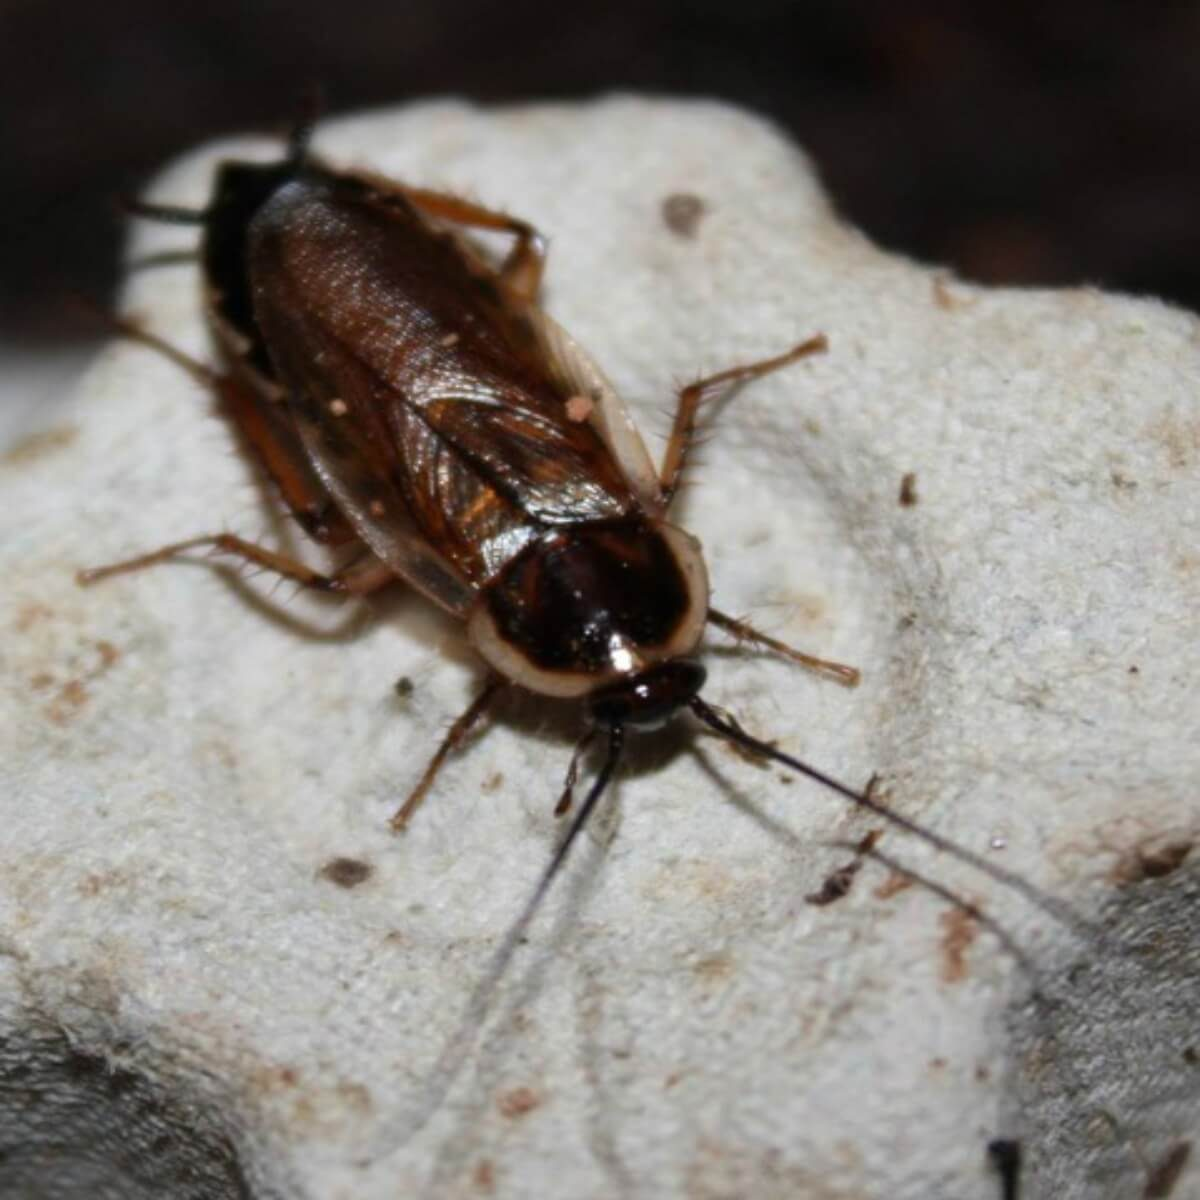 pennsylvania woods cockroach